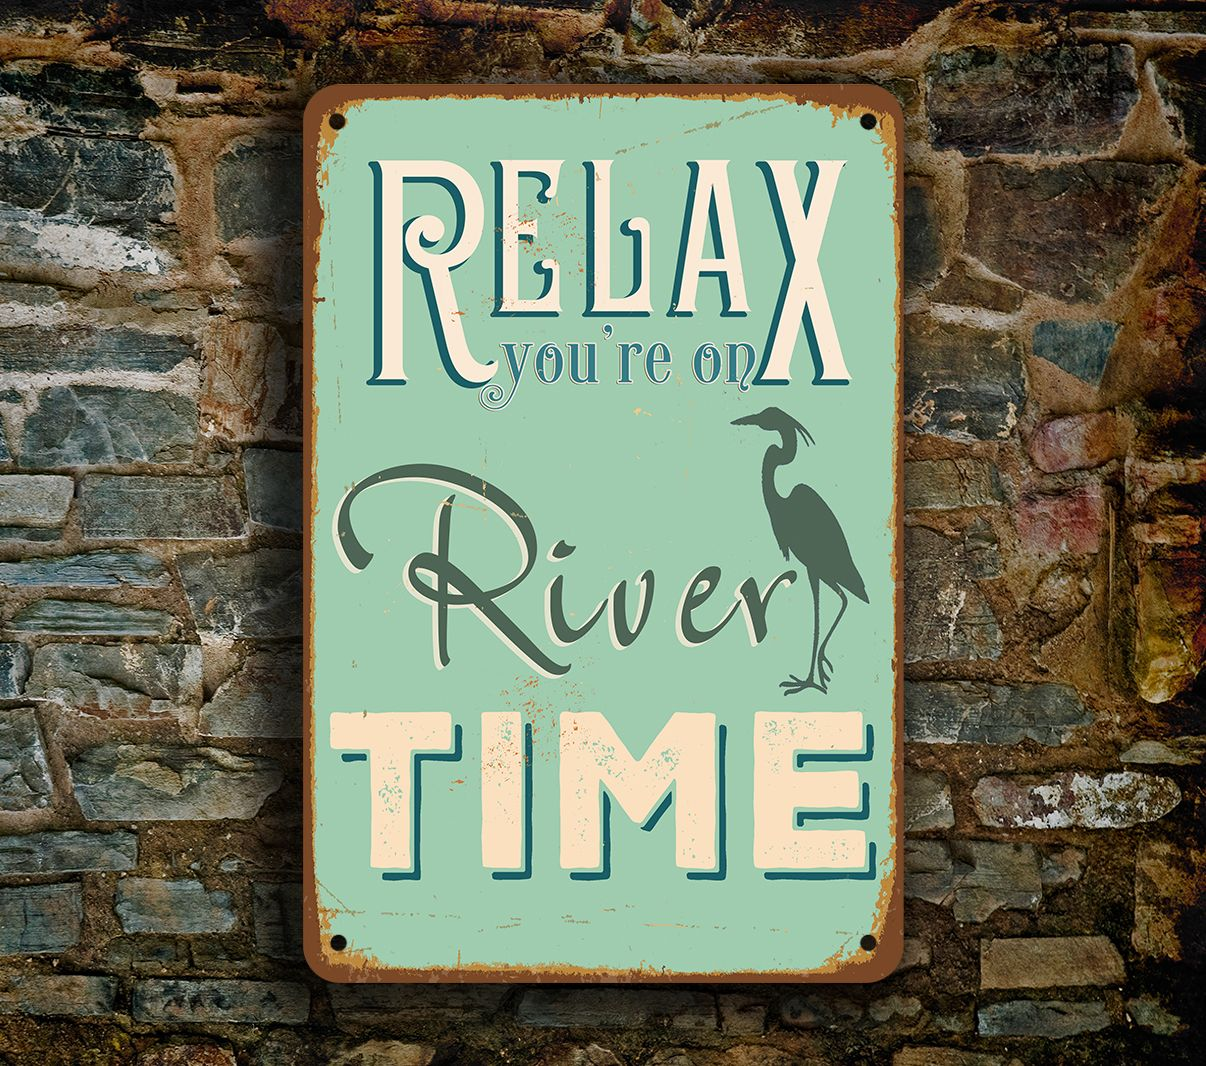 River Signs - RELAX River Time Sign http://www.classicmetalsigns.com/product/river-signs-relax-river-time-sign/